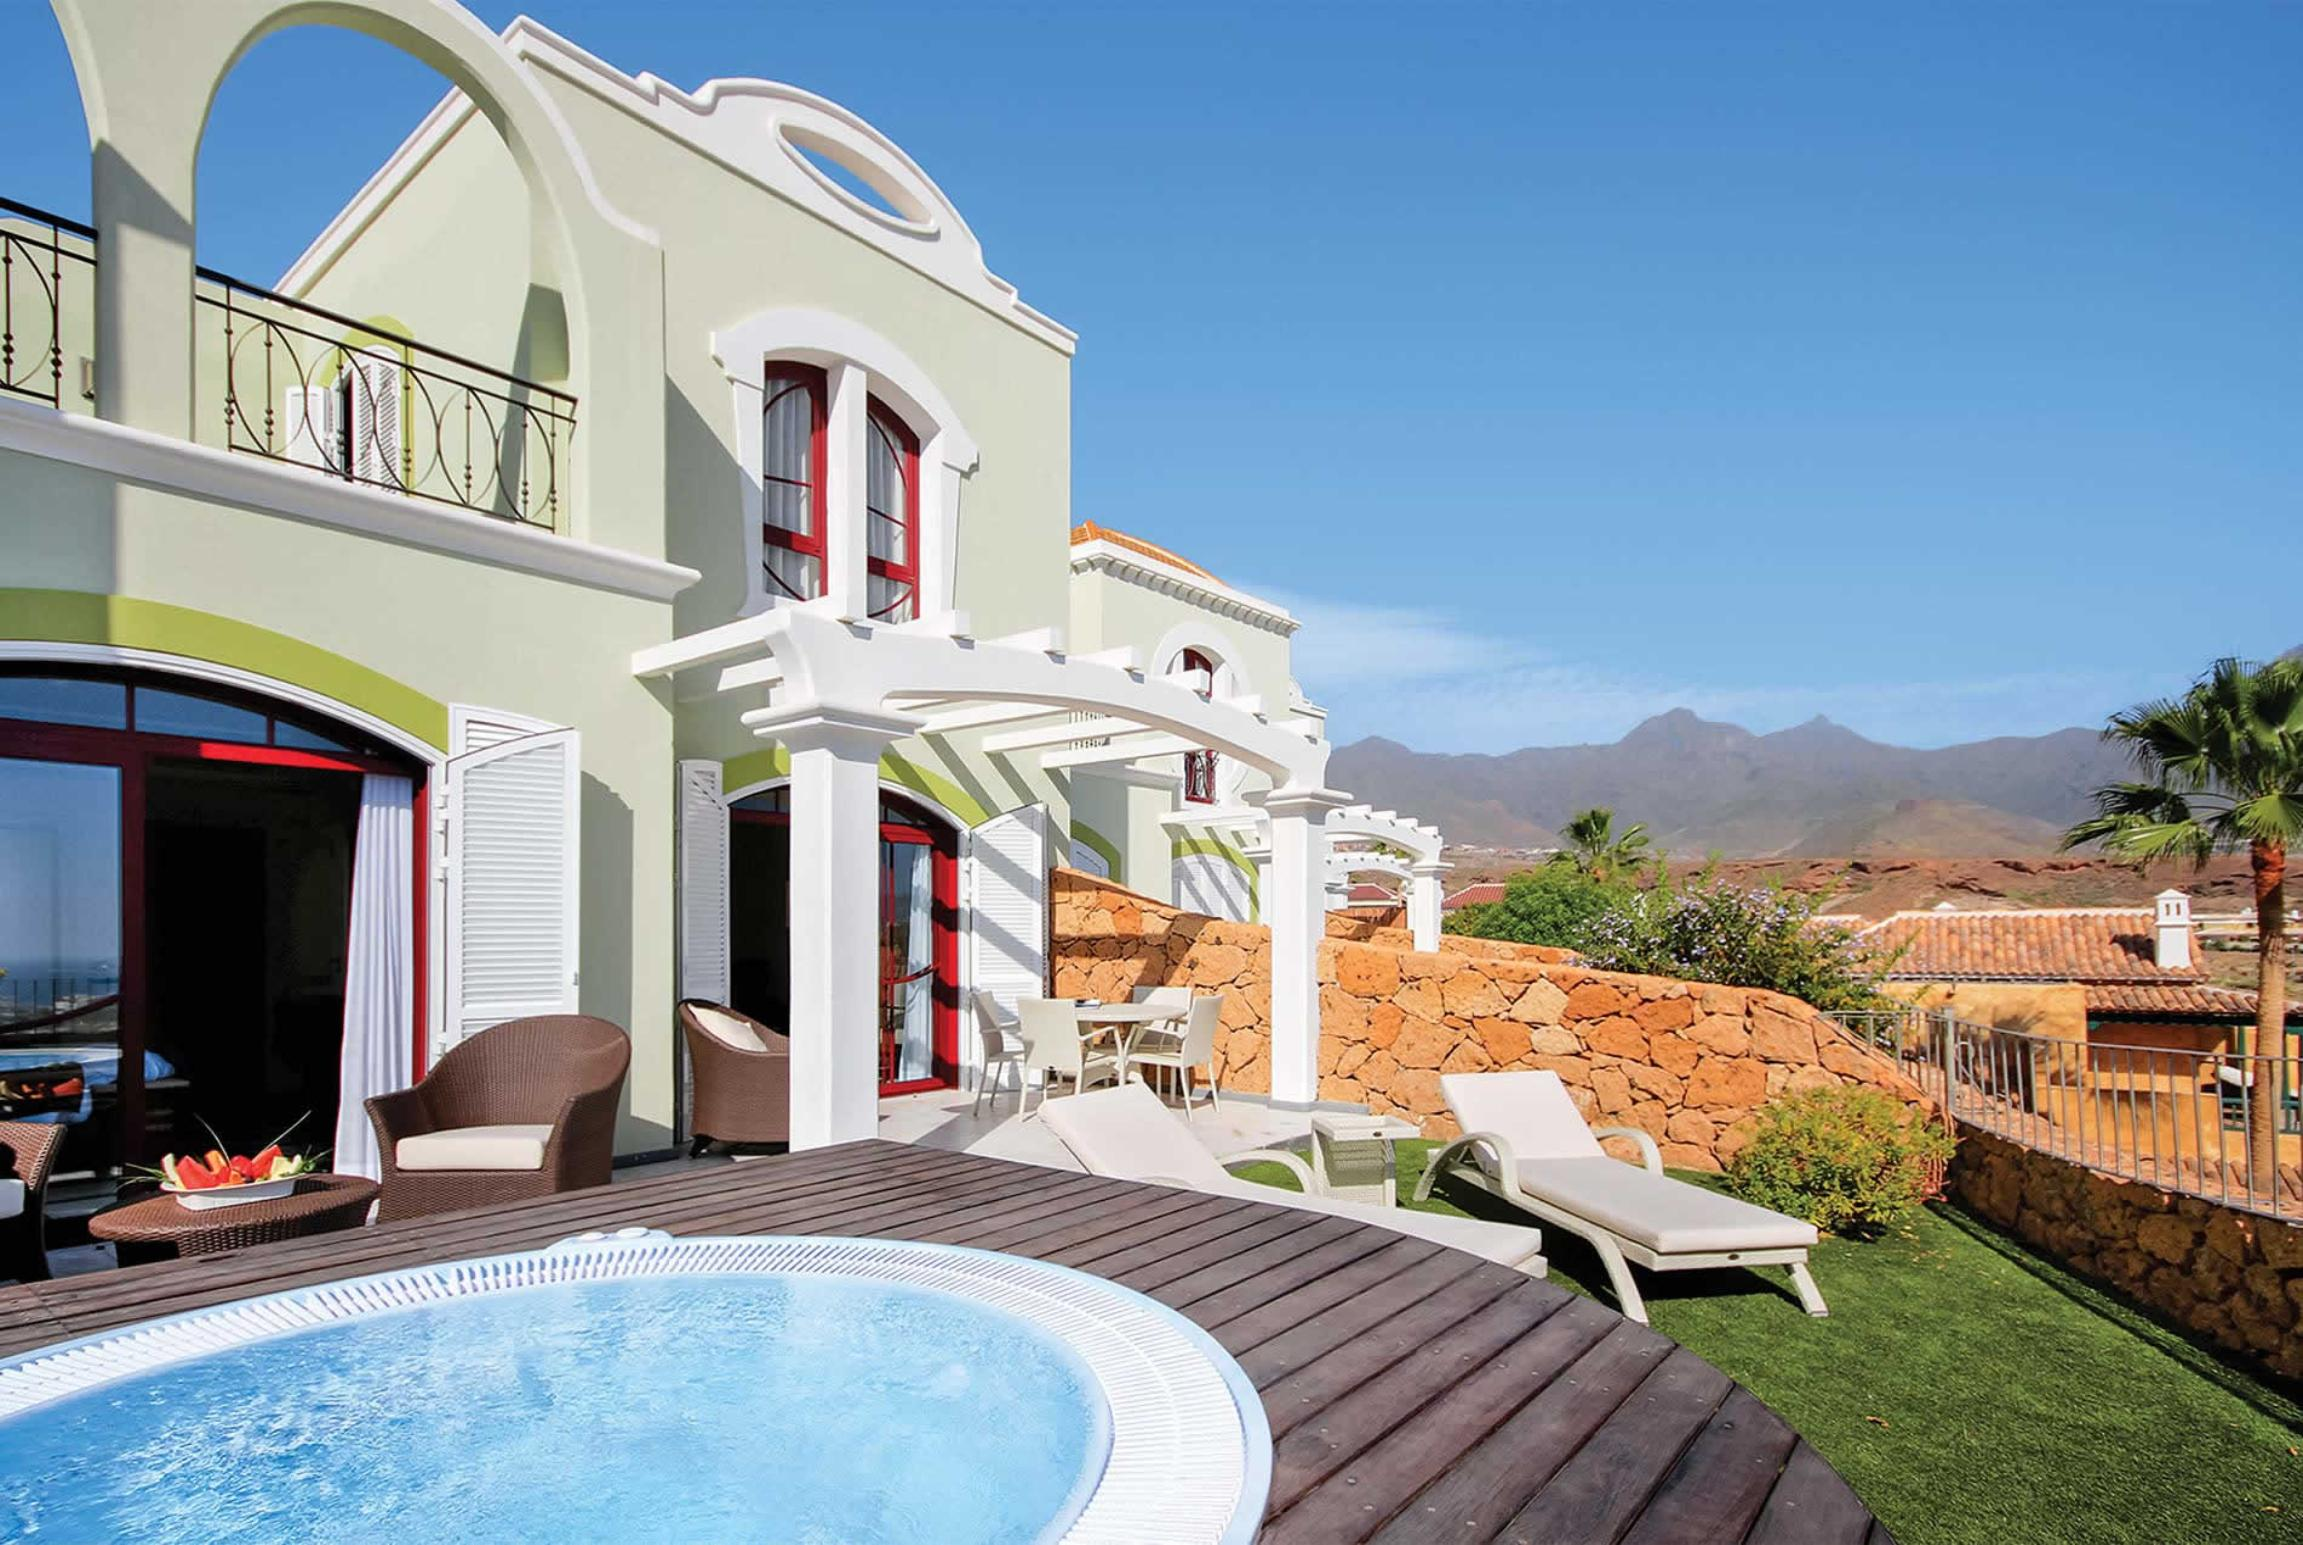 Photo of Villa Maria 2 bed with Jacuzzi villa